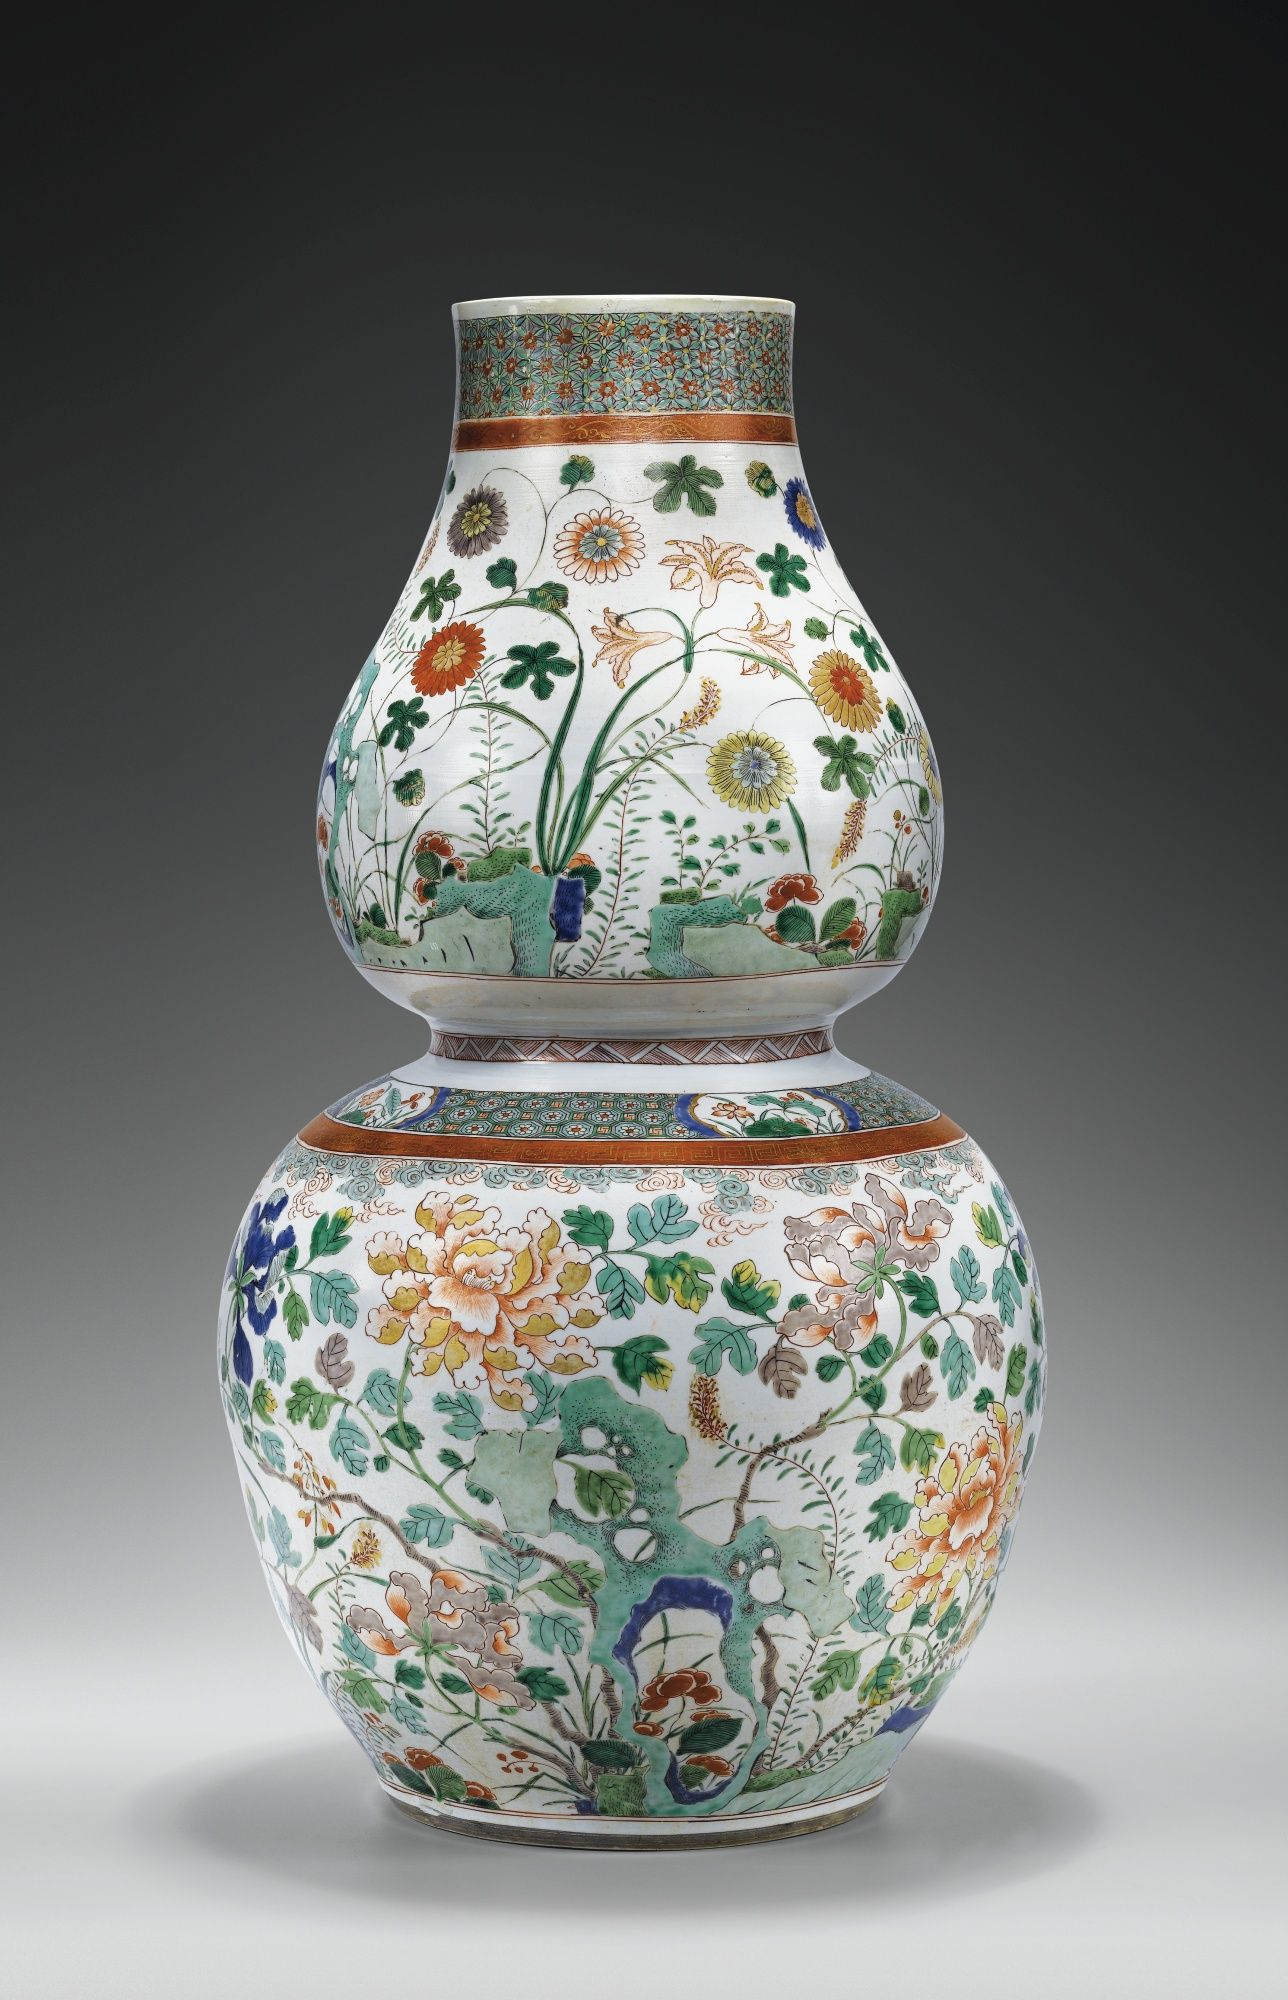 An Unusual Large Double Gourd Shaped Famille Verte Vase Qing Dynasty Kangxi Period 1662 1722 Porcelain Ceramics Chinese Ceramics Antique Vase